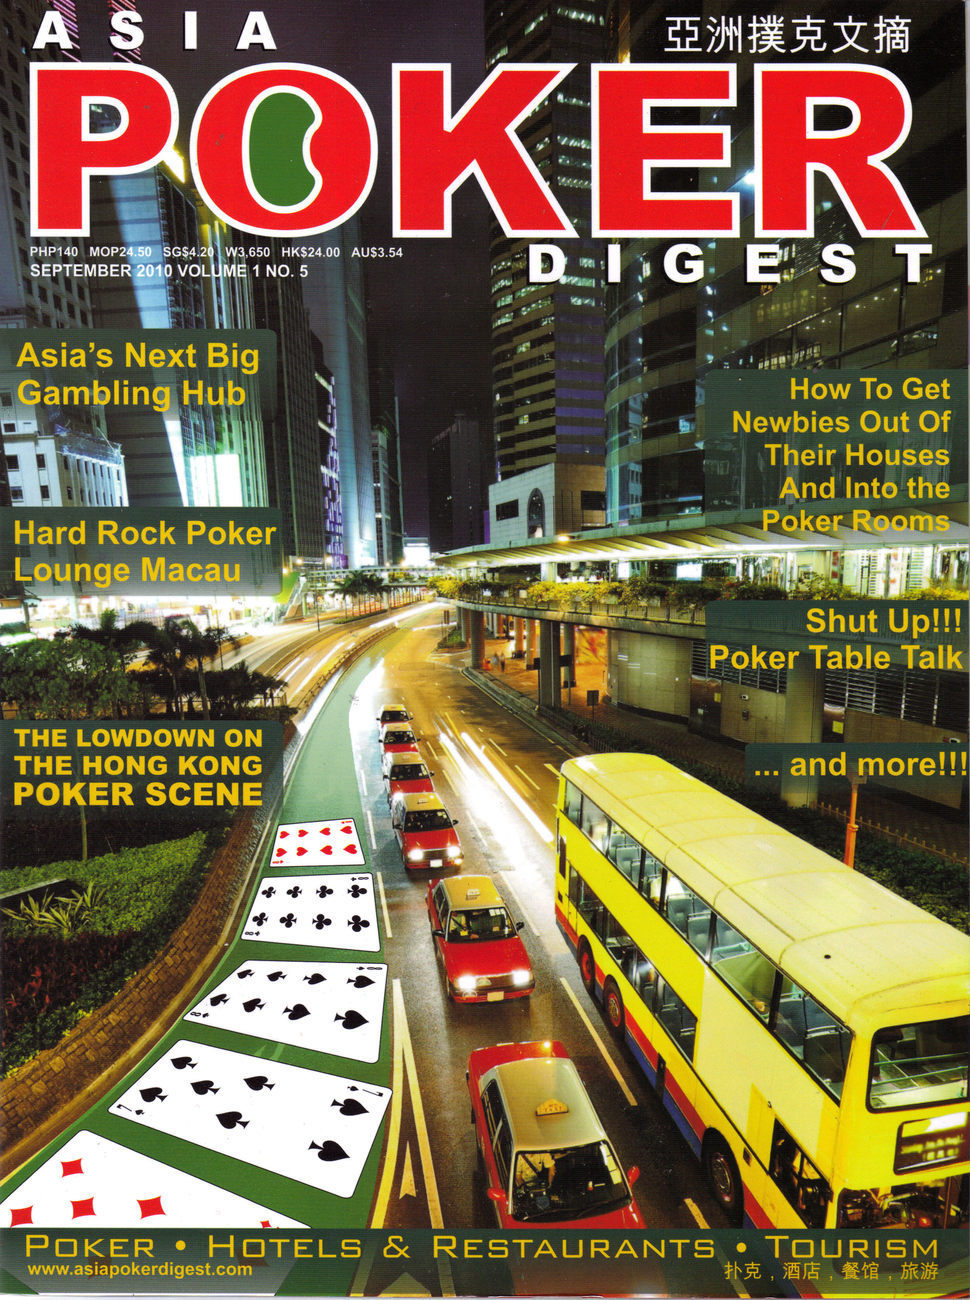 Primary image for ASIA POKER DIGEST Sept 2010 Vol 1 No. 5